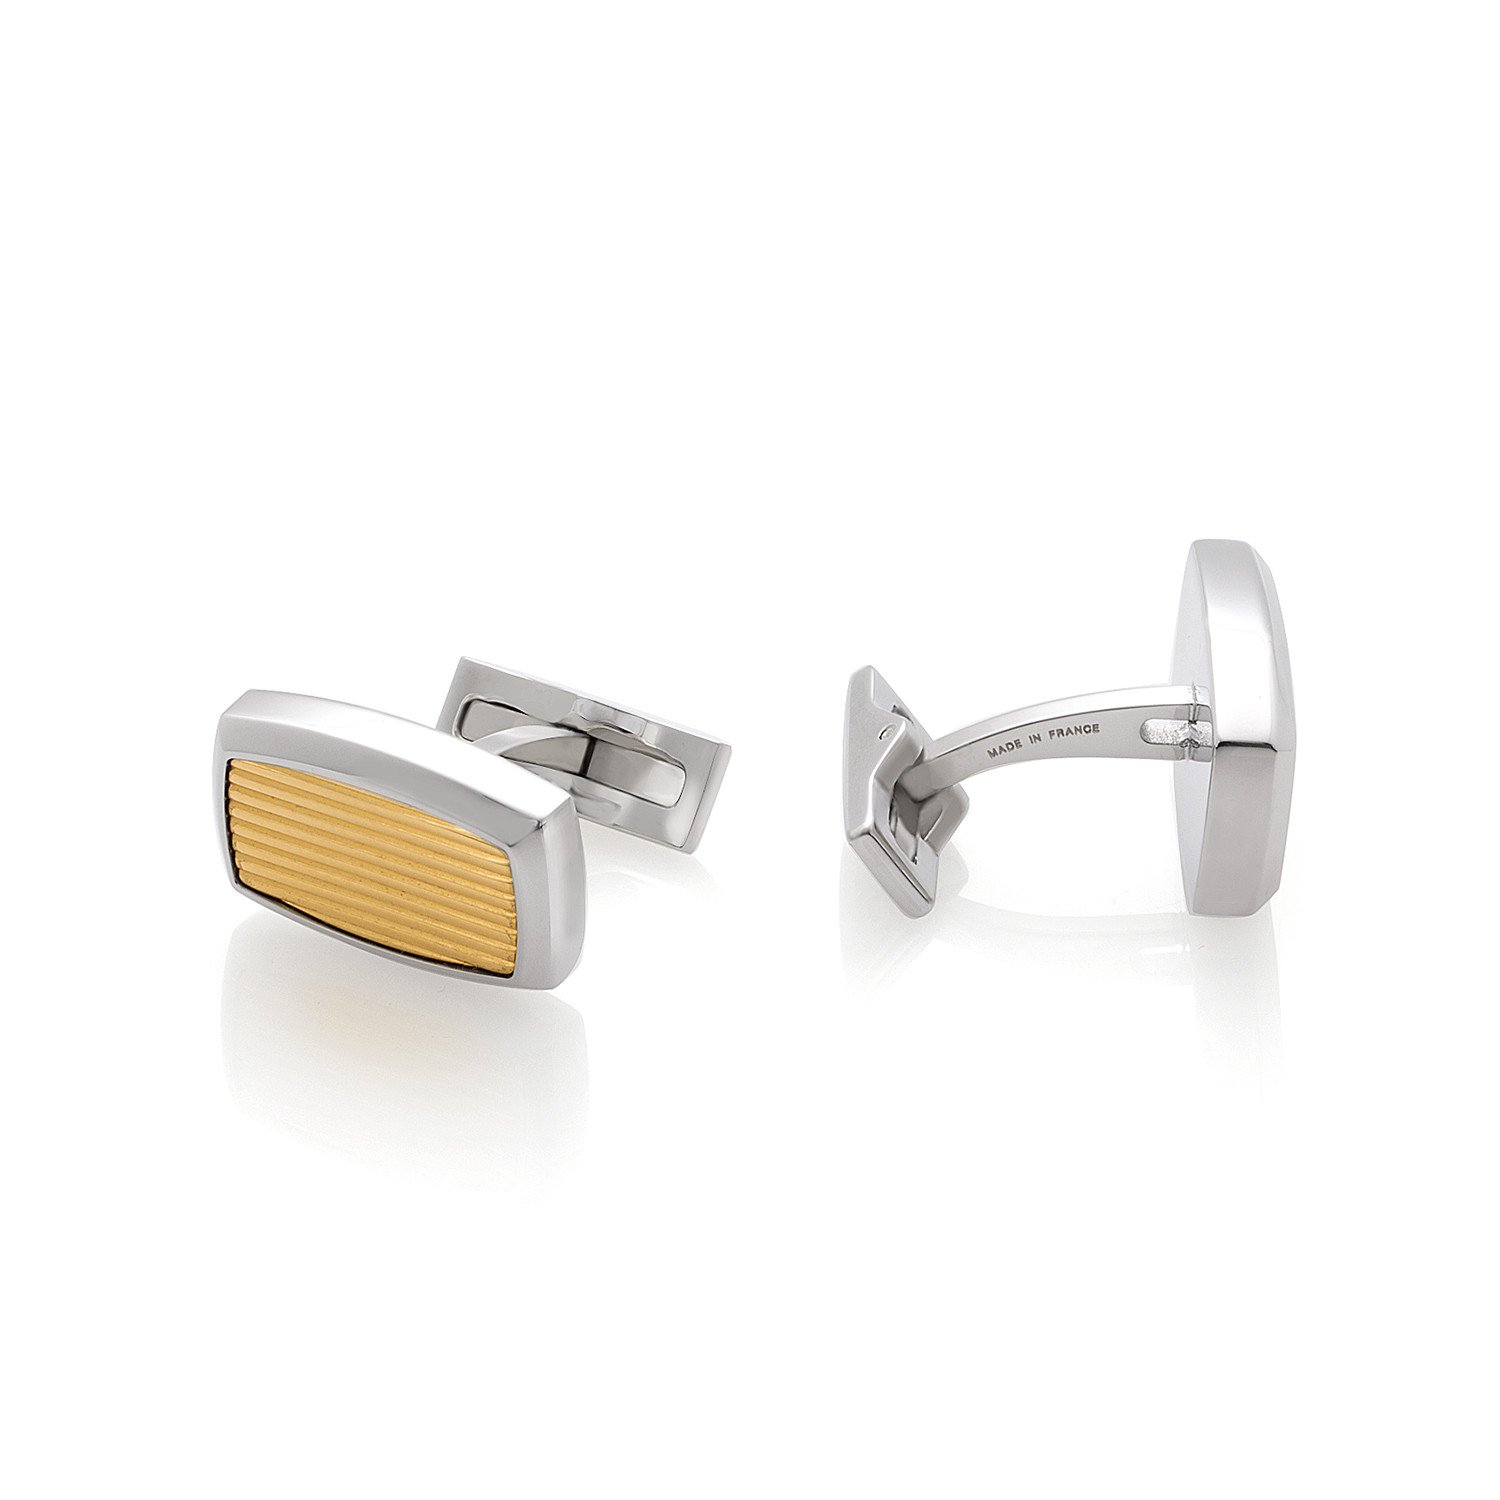 S.T. Dupont Guilloche Style Cufflinks // 005503